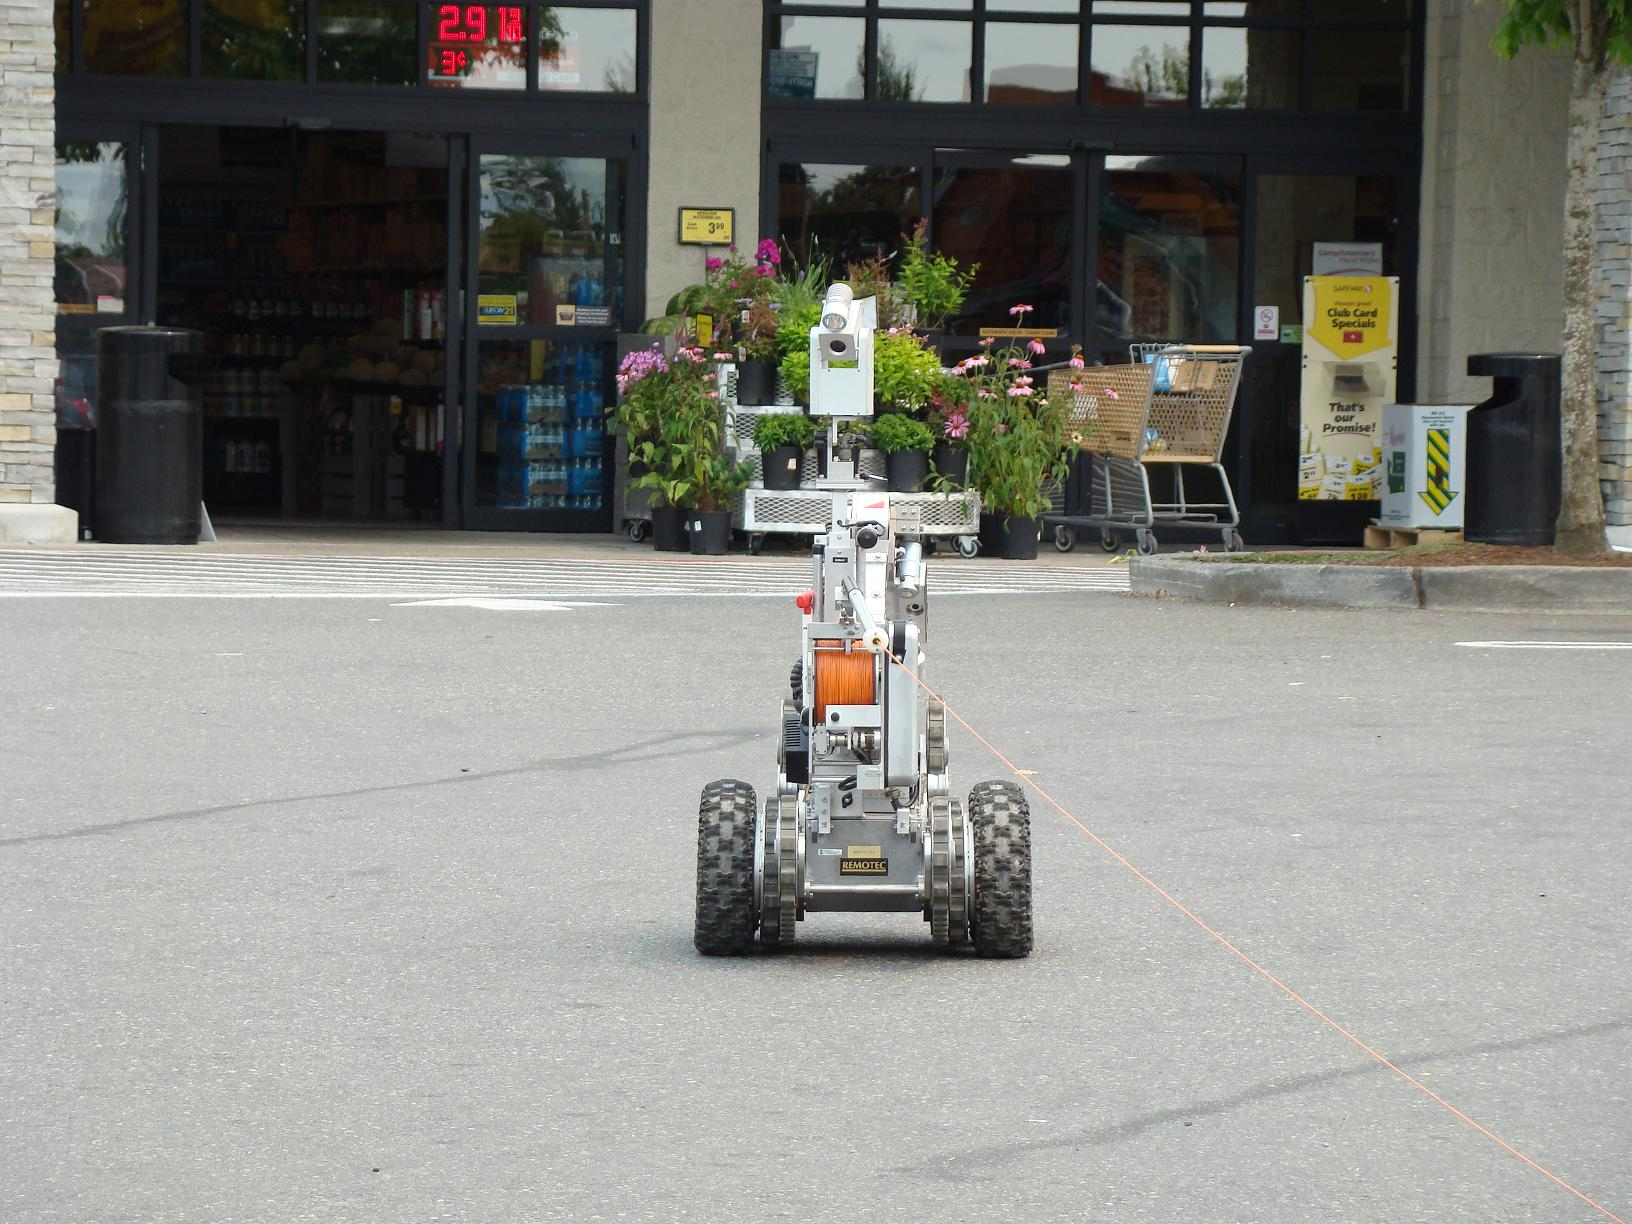 bomb detection robots enroute